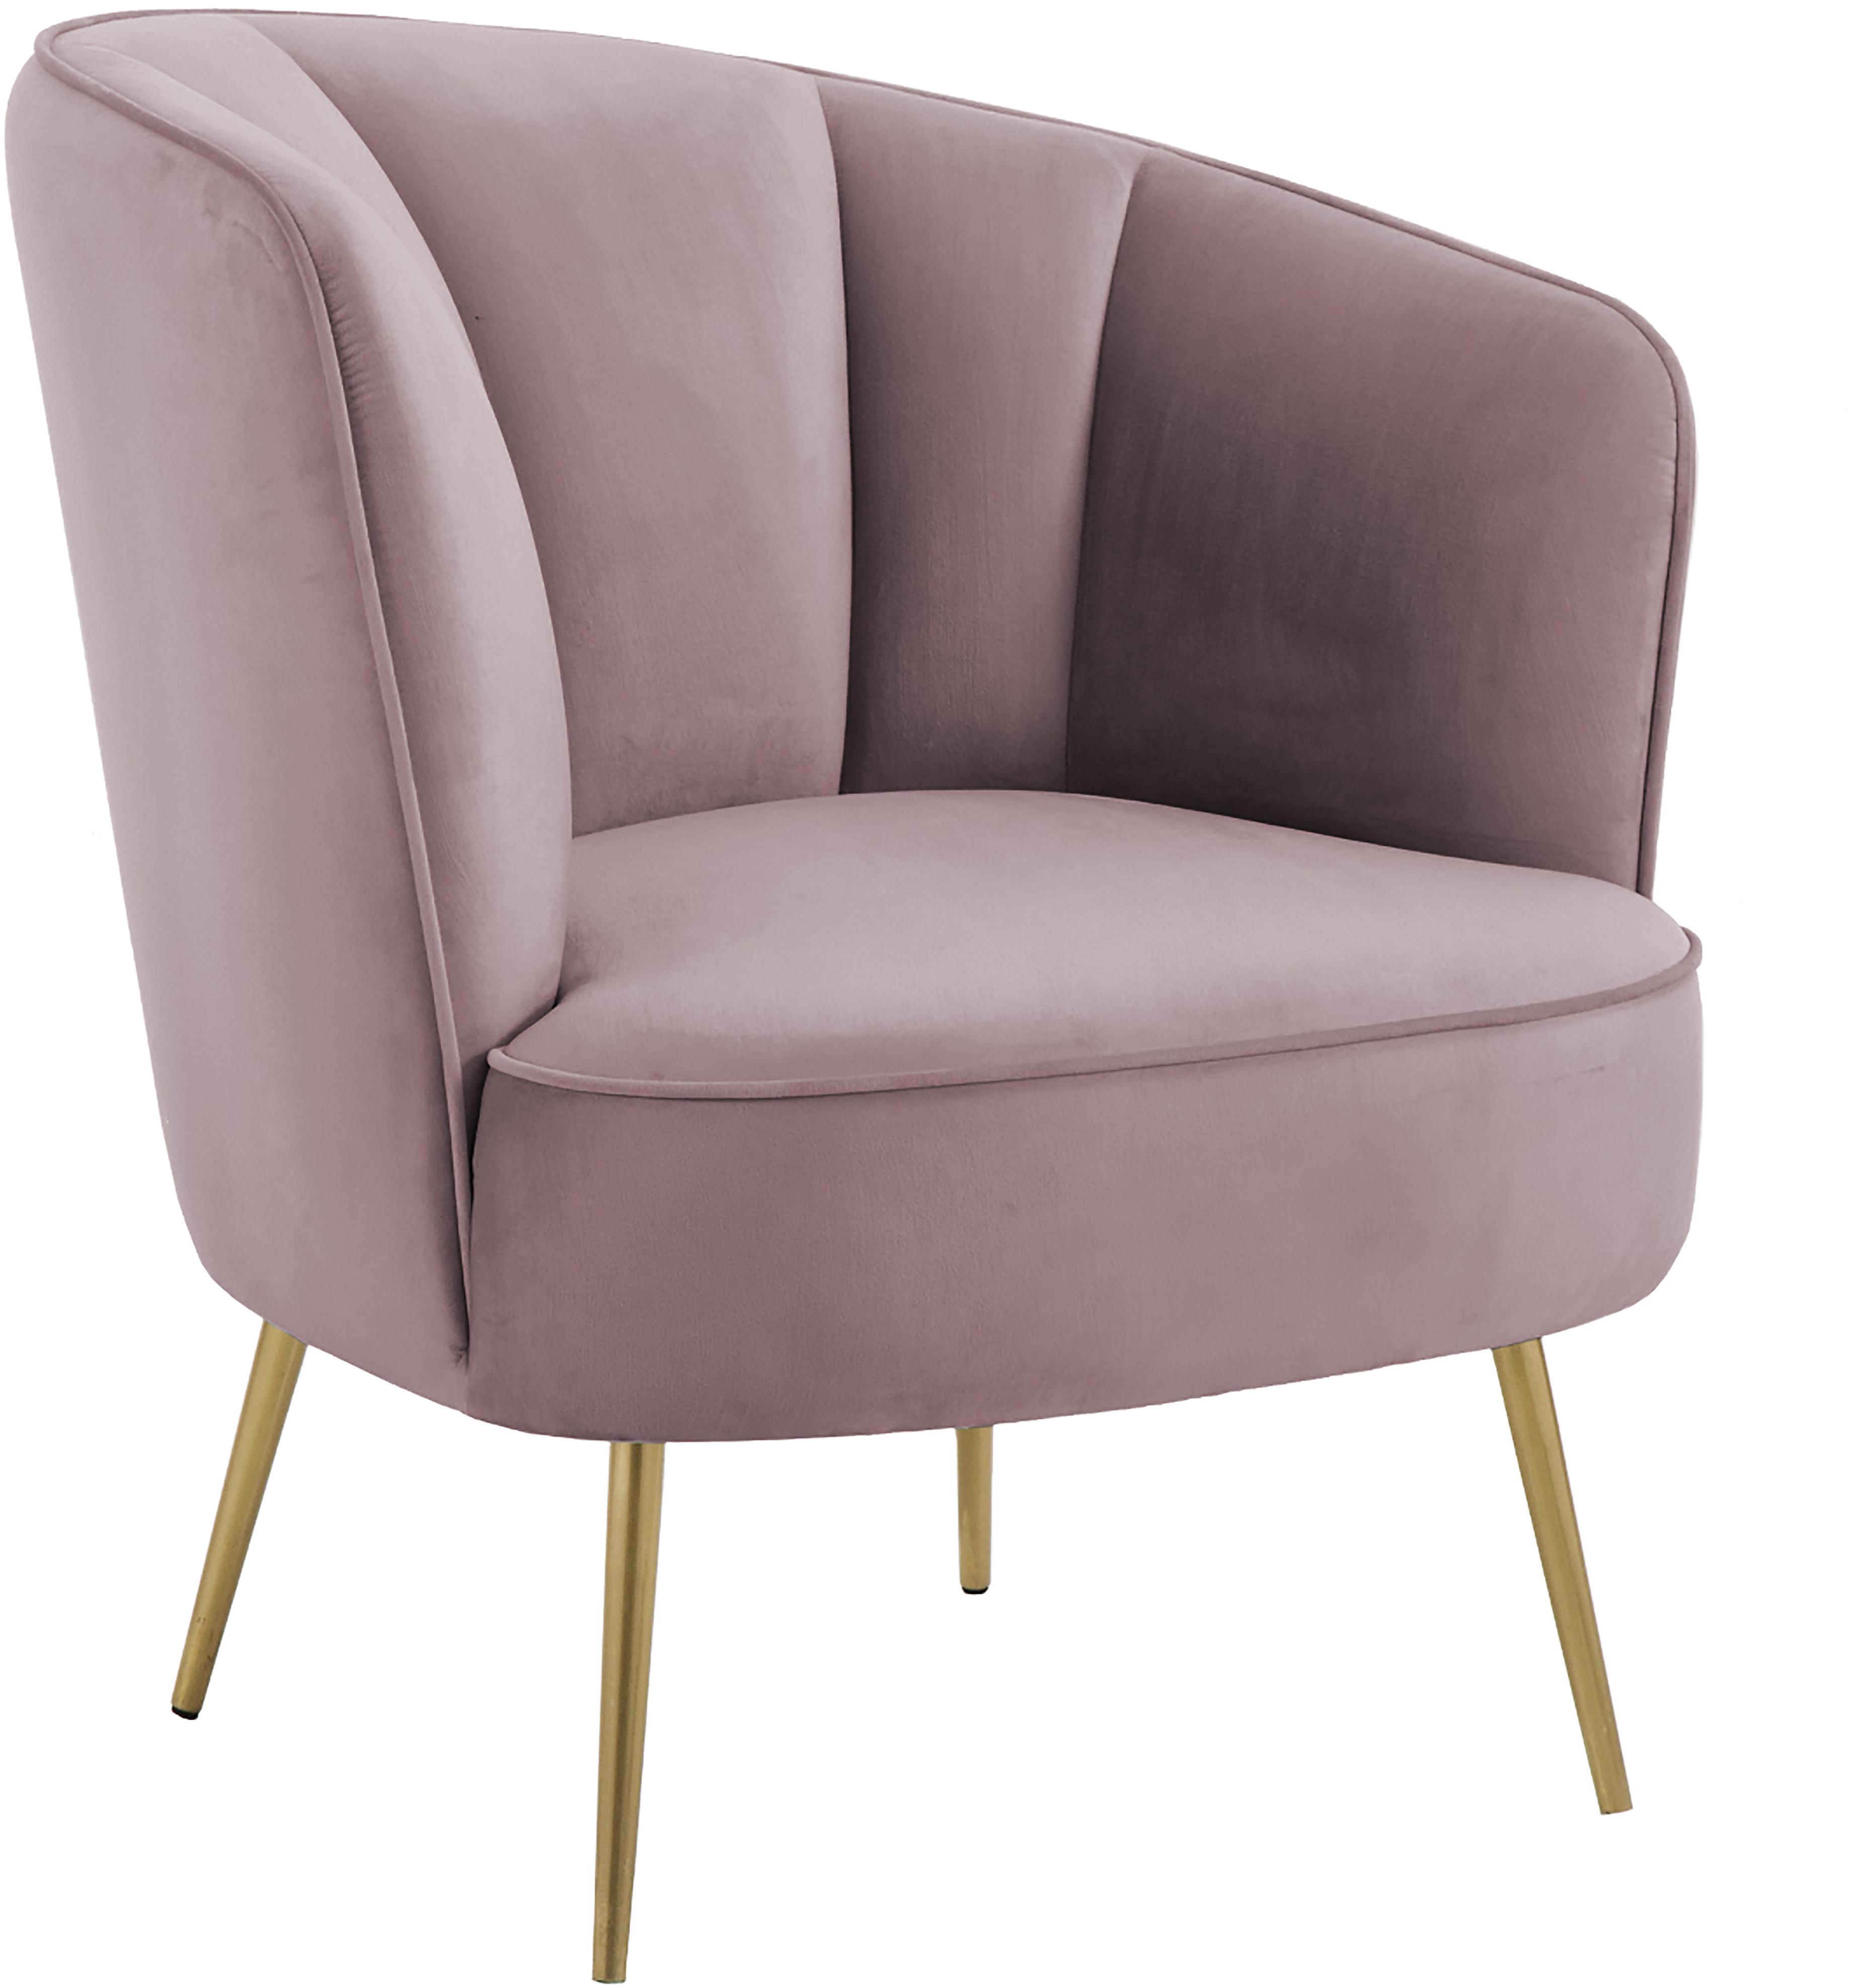 Samt-Cocktailsessel Louise in Rosa, Bezug: Samt (Polyester) 30.000 S, Samt Mauve, B 76 x T 75 cm